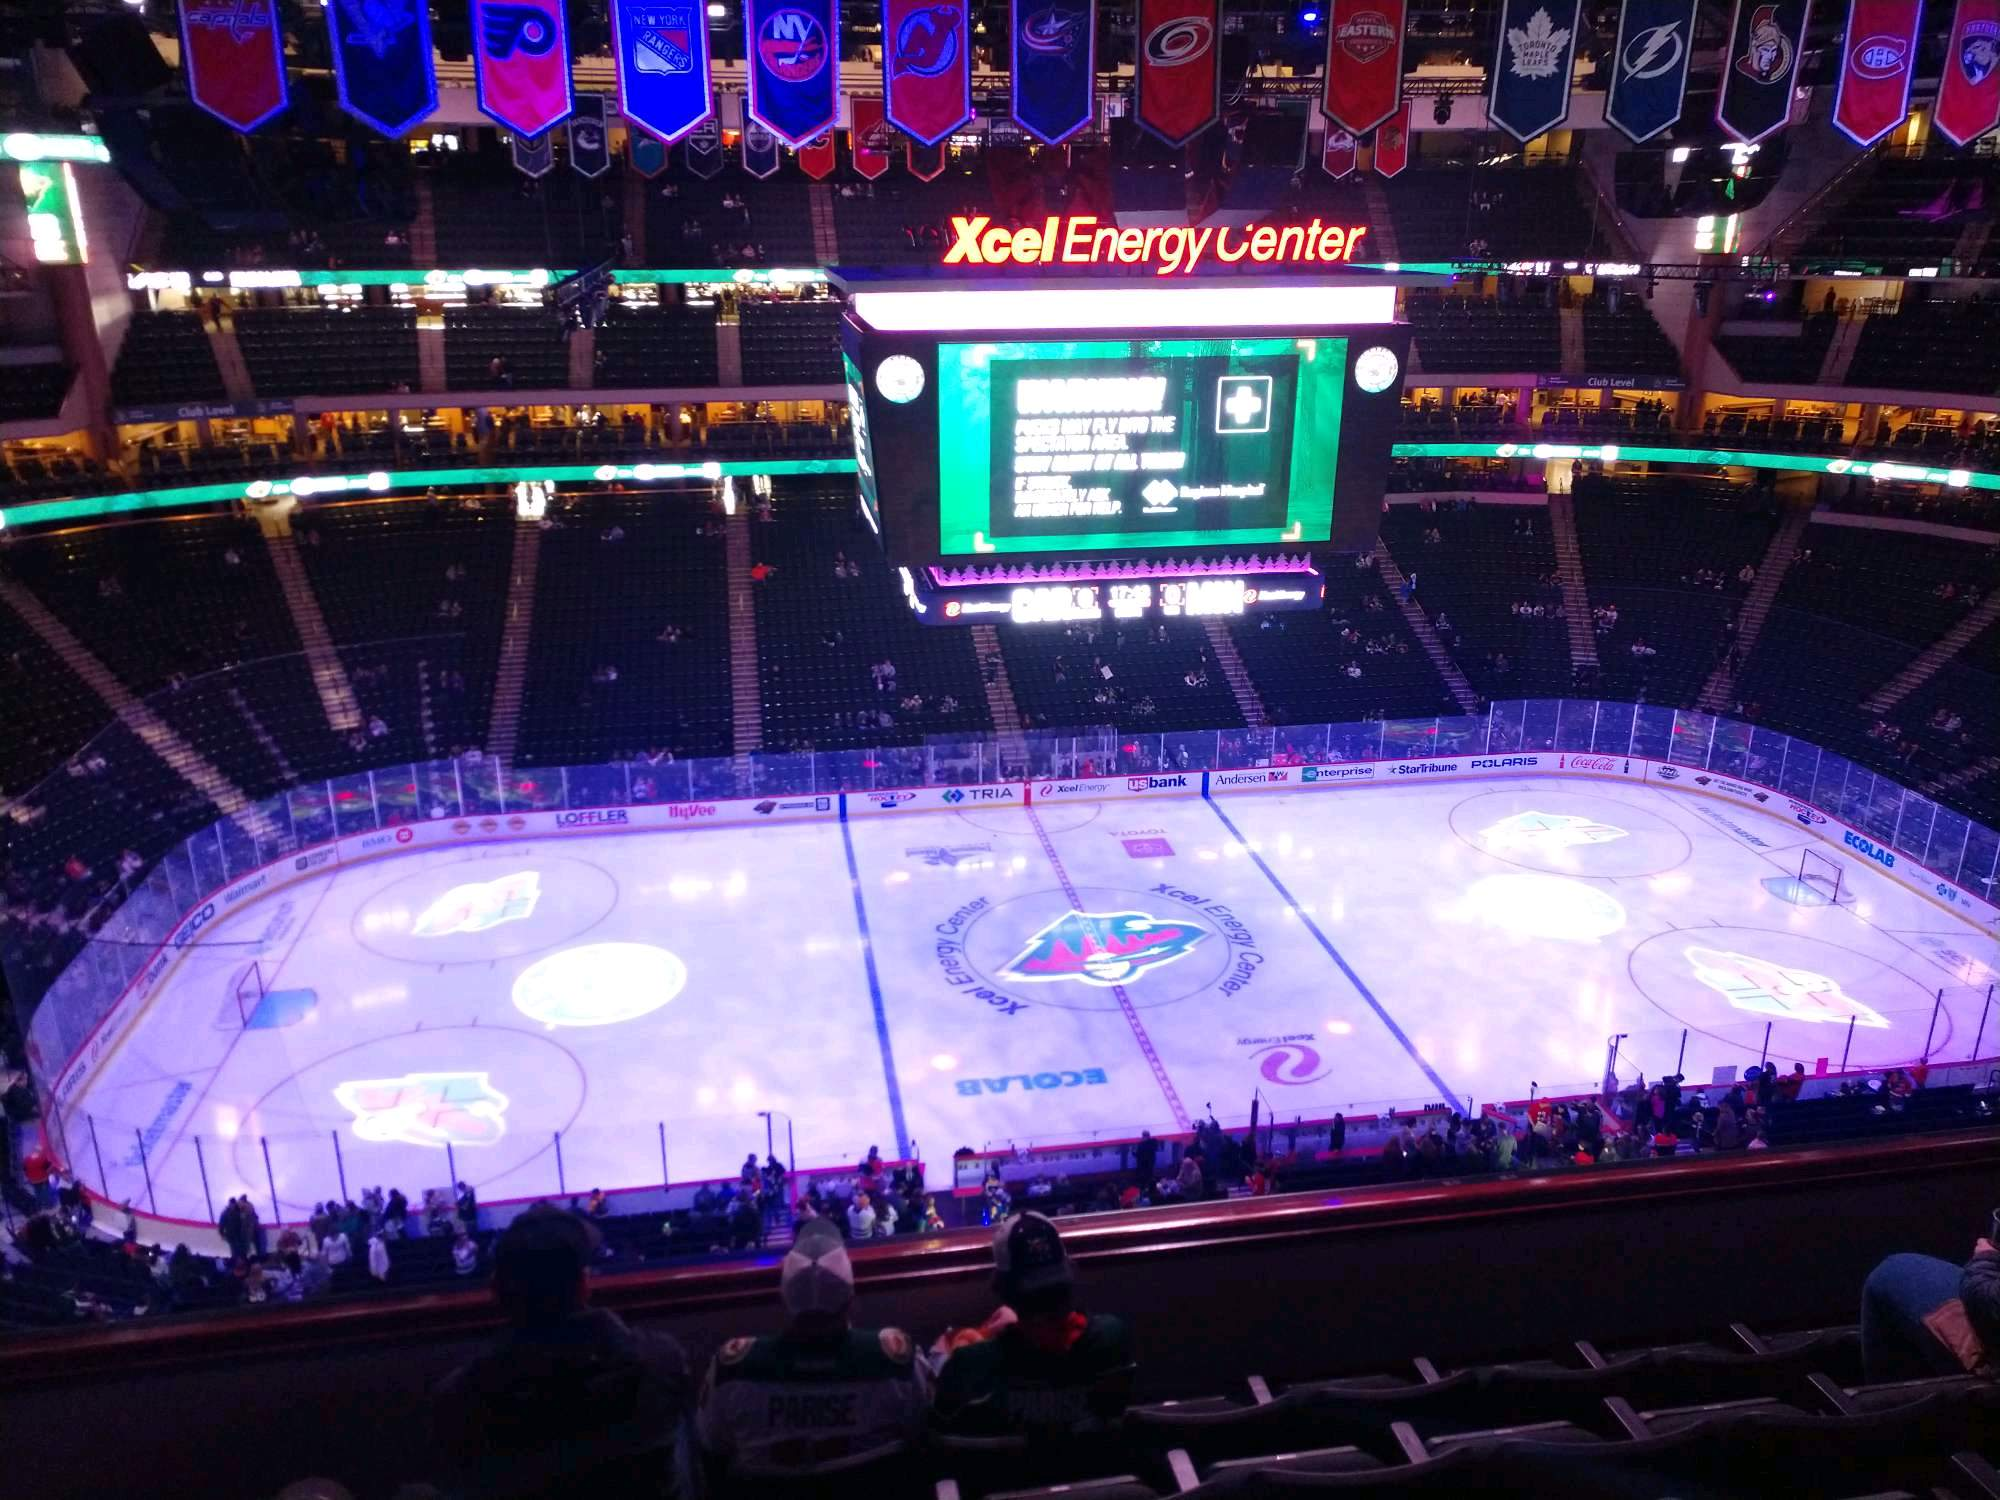 Xcel Energy Center Section 220 Row 5 Seat 10